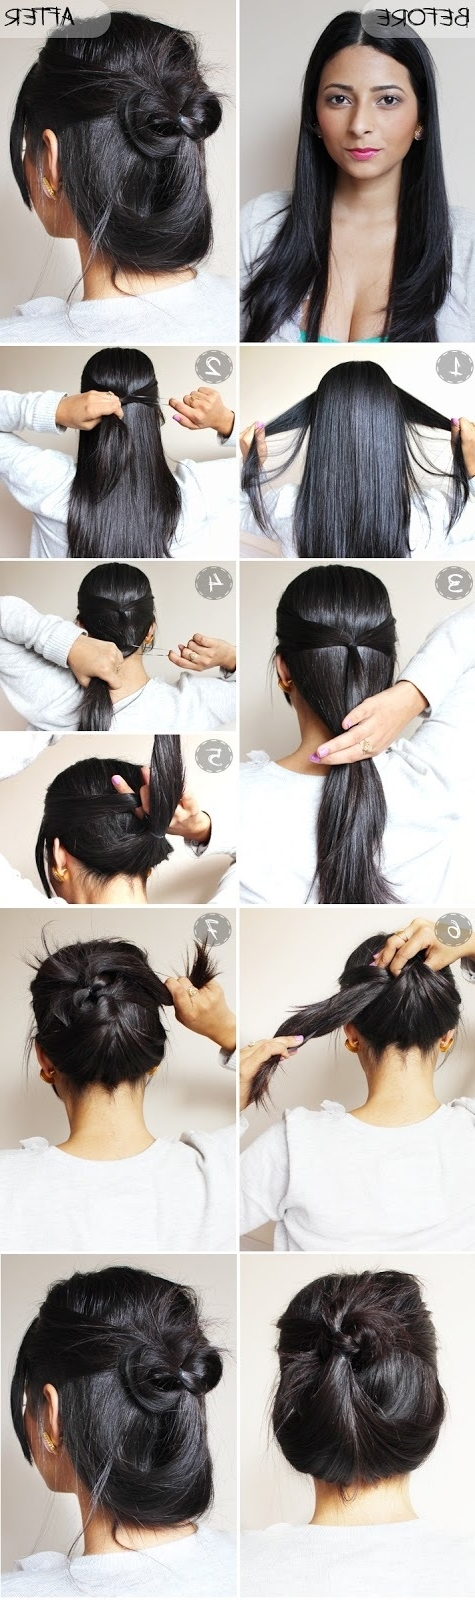 Quick And Easy Updo Hairstyles For Long Hair | Hair Dos/accessories With Regard To Quick And Easy Wedding Hairstyles For Long Hair (View 9 of 15)